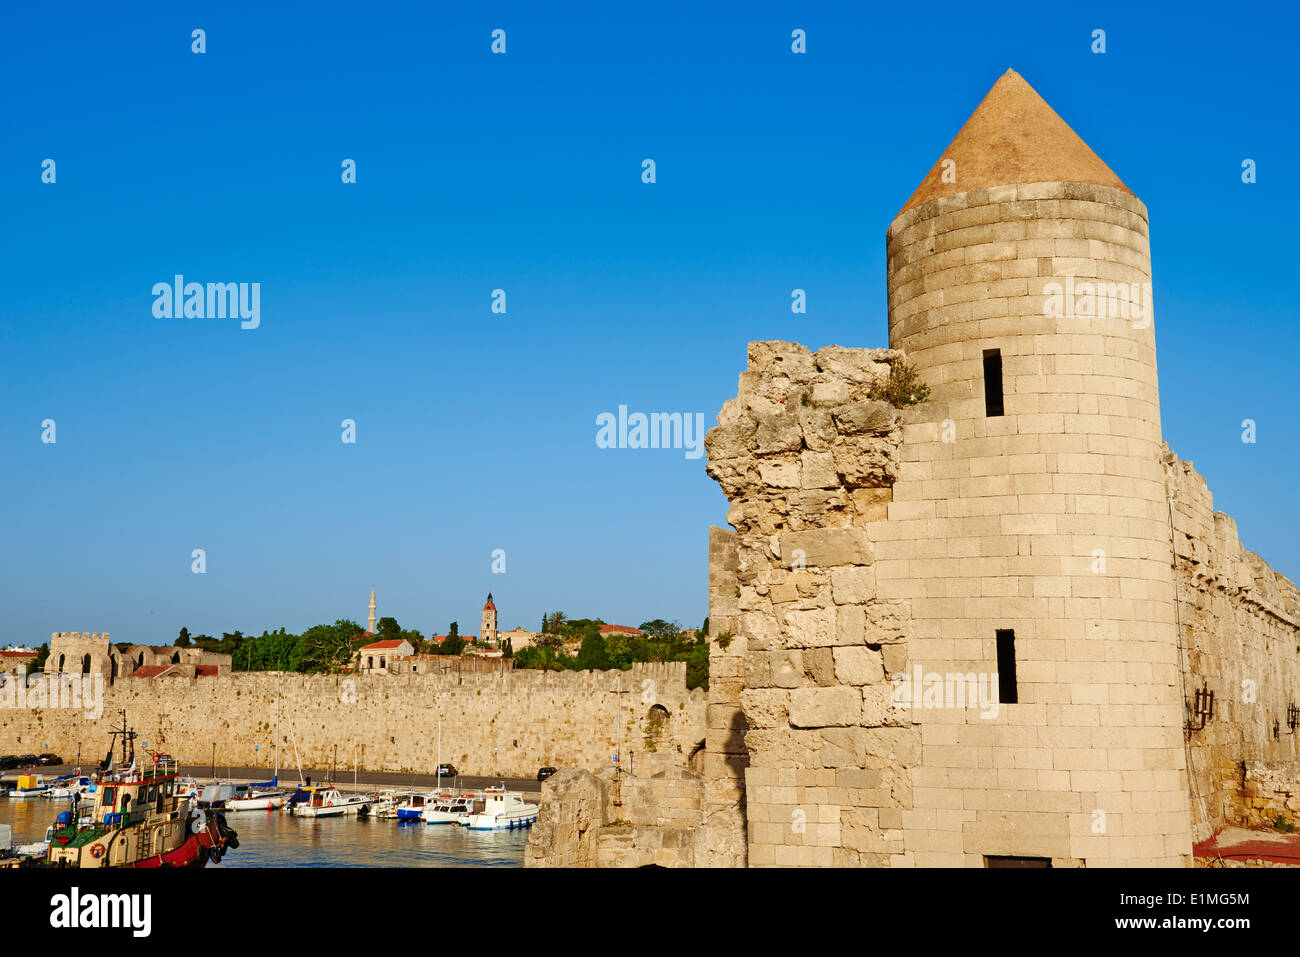 Greece, Dodecanese, Rhodes island, Rhodes city, Unesco word heritage, Fortress - Stock Image